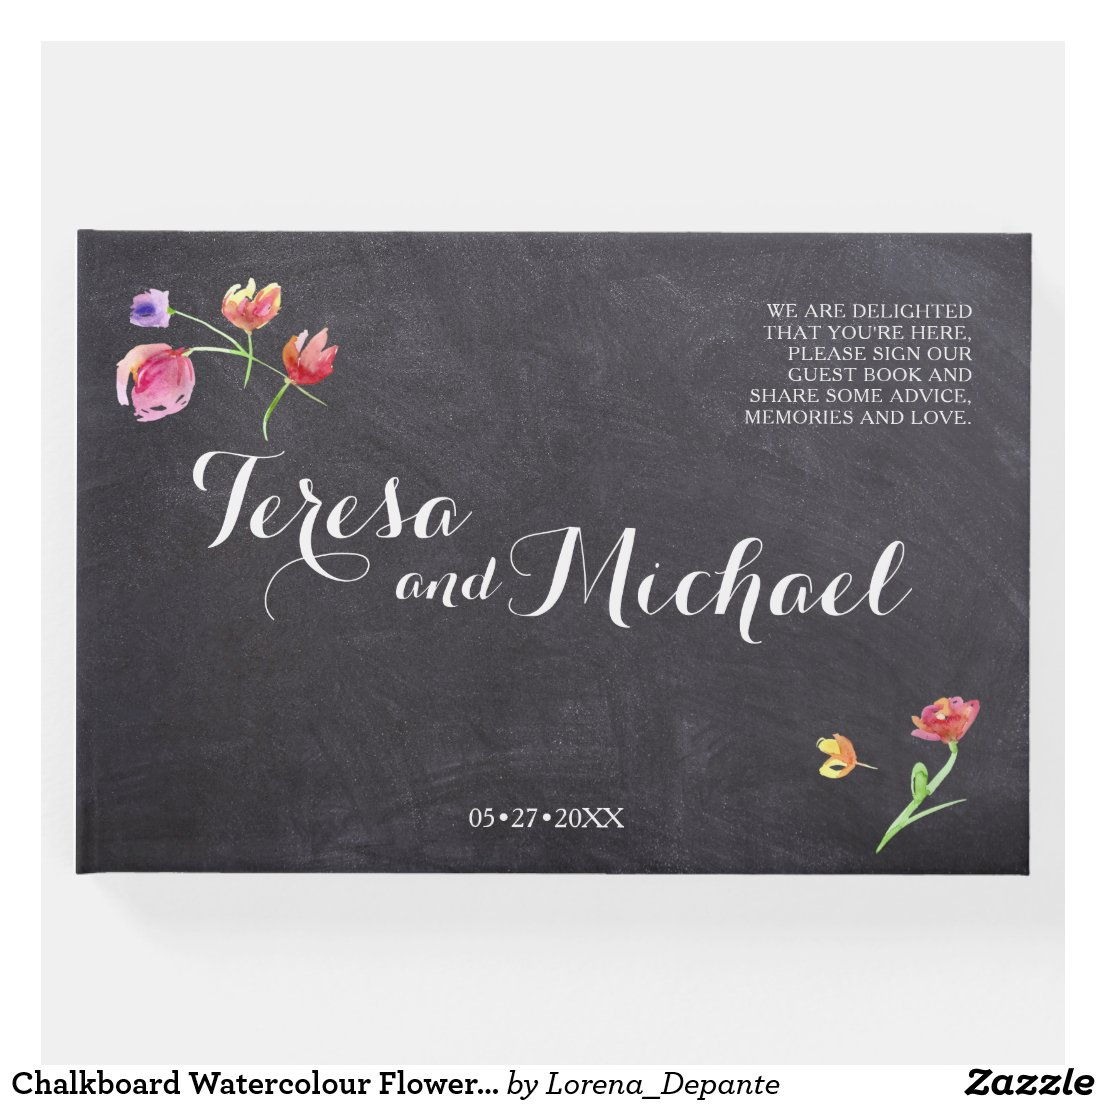 Chalkboard Watercolour Flower Painting, rustic Guest Book